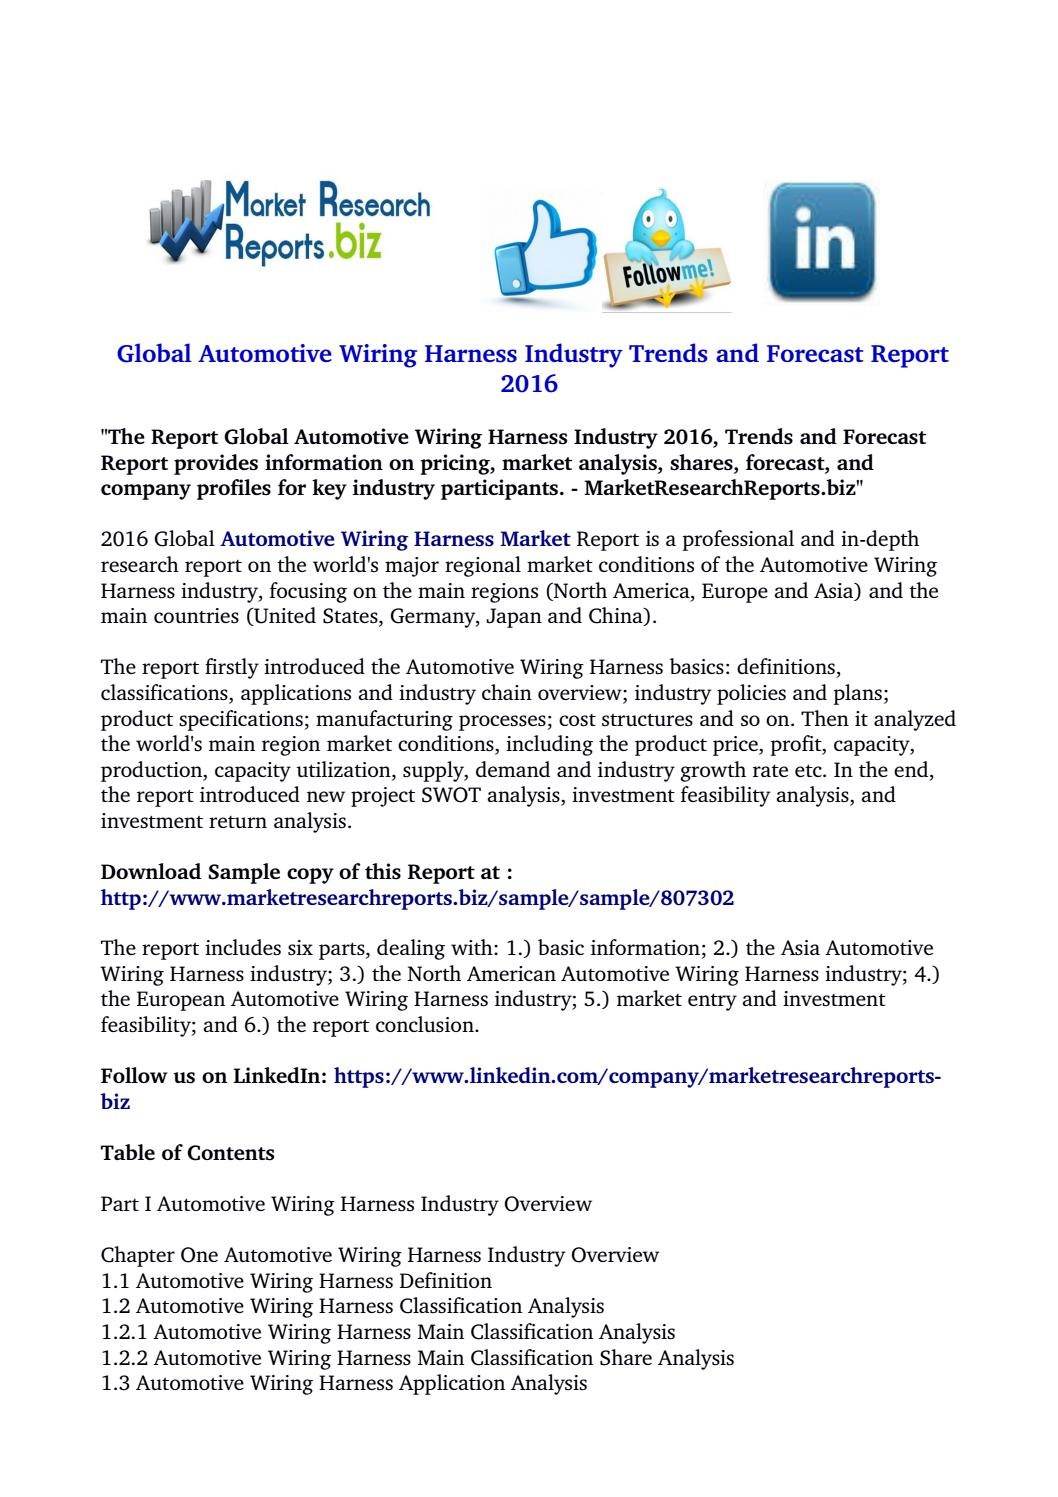 Incredible Wiring And Harness Linkedin Wiring Diagram Tutorial Wiring Cloud Hisonuggs Outletorg